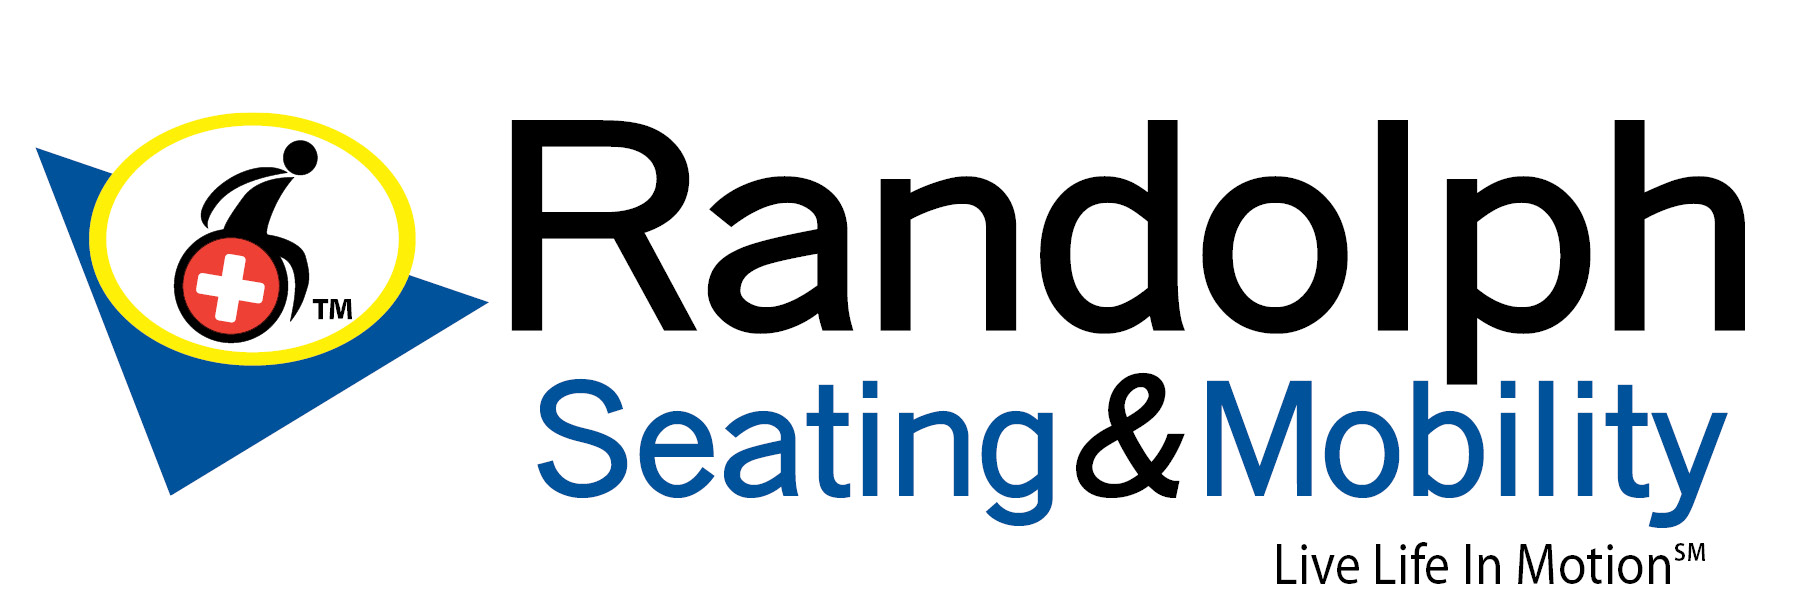 Randolph Seating & Mobility